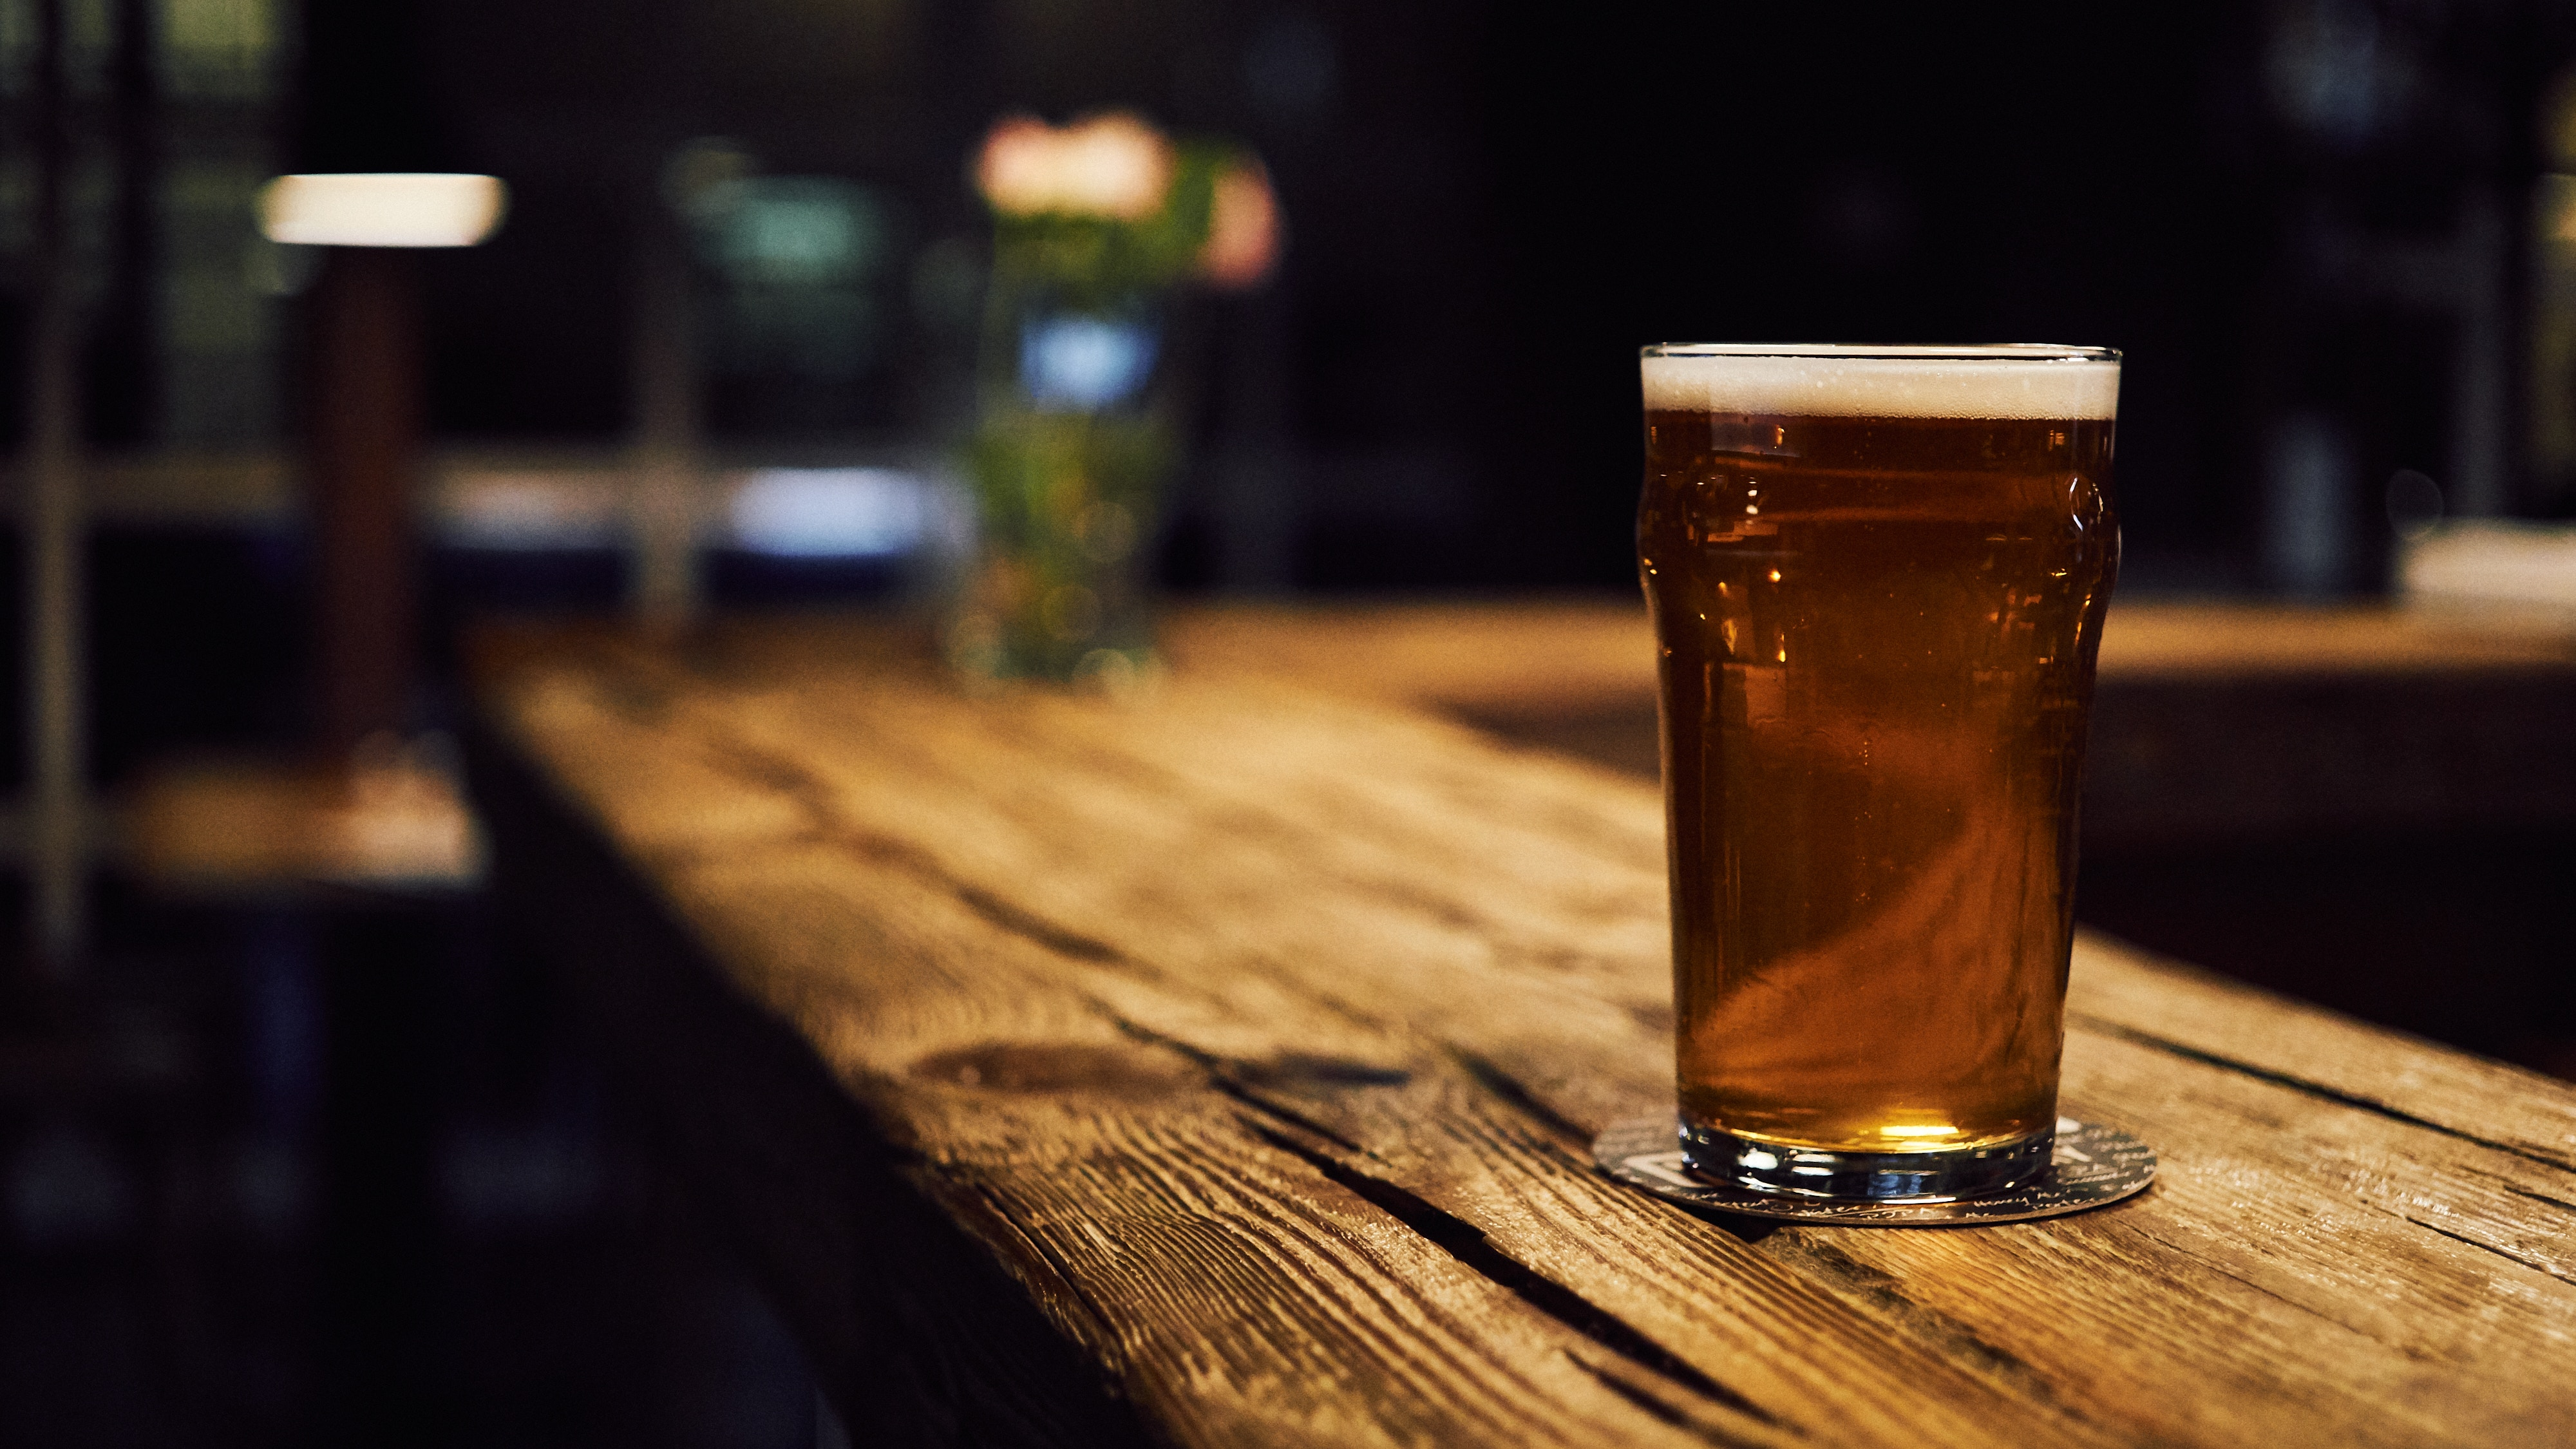 A tall glass of dark beer sits alone on a long wooden counter in a well-lit bar.